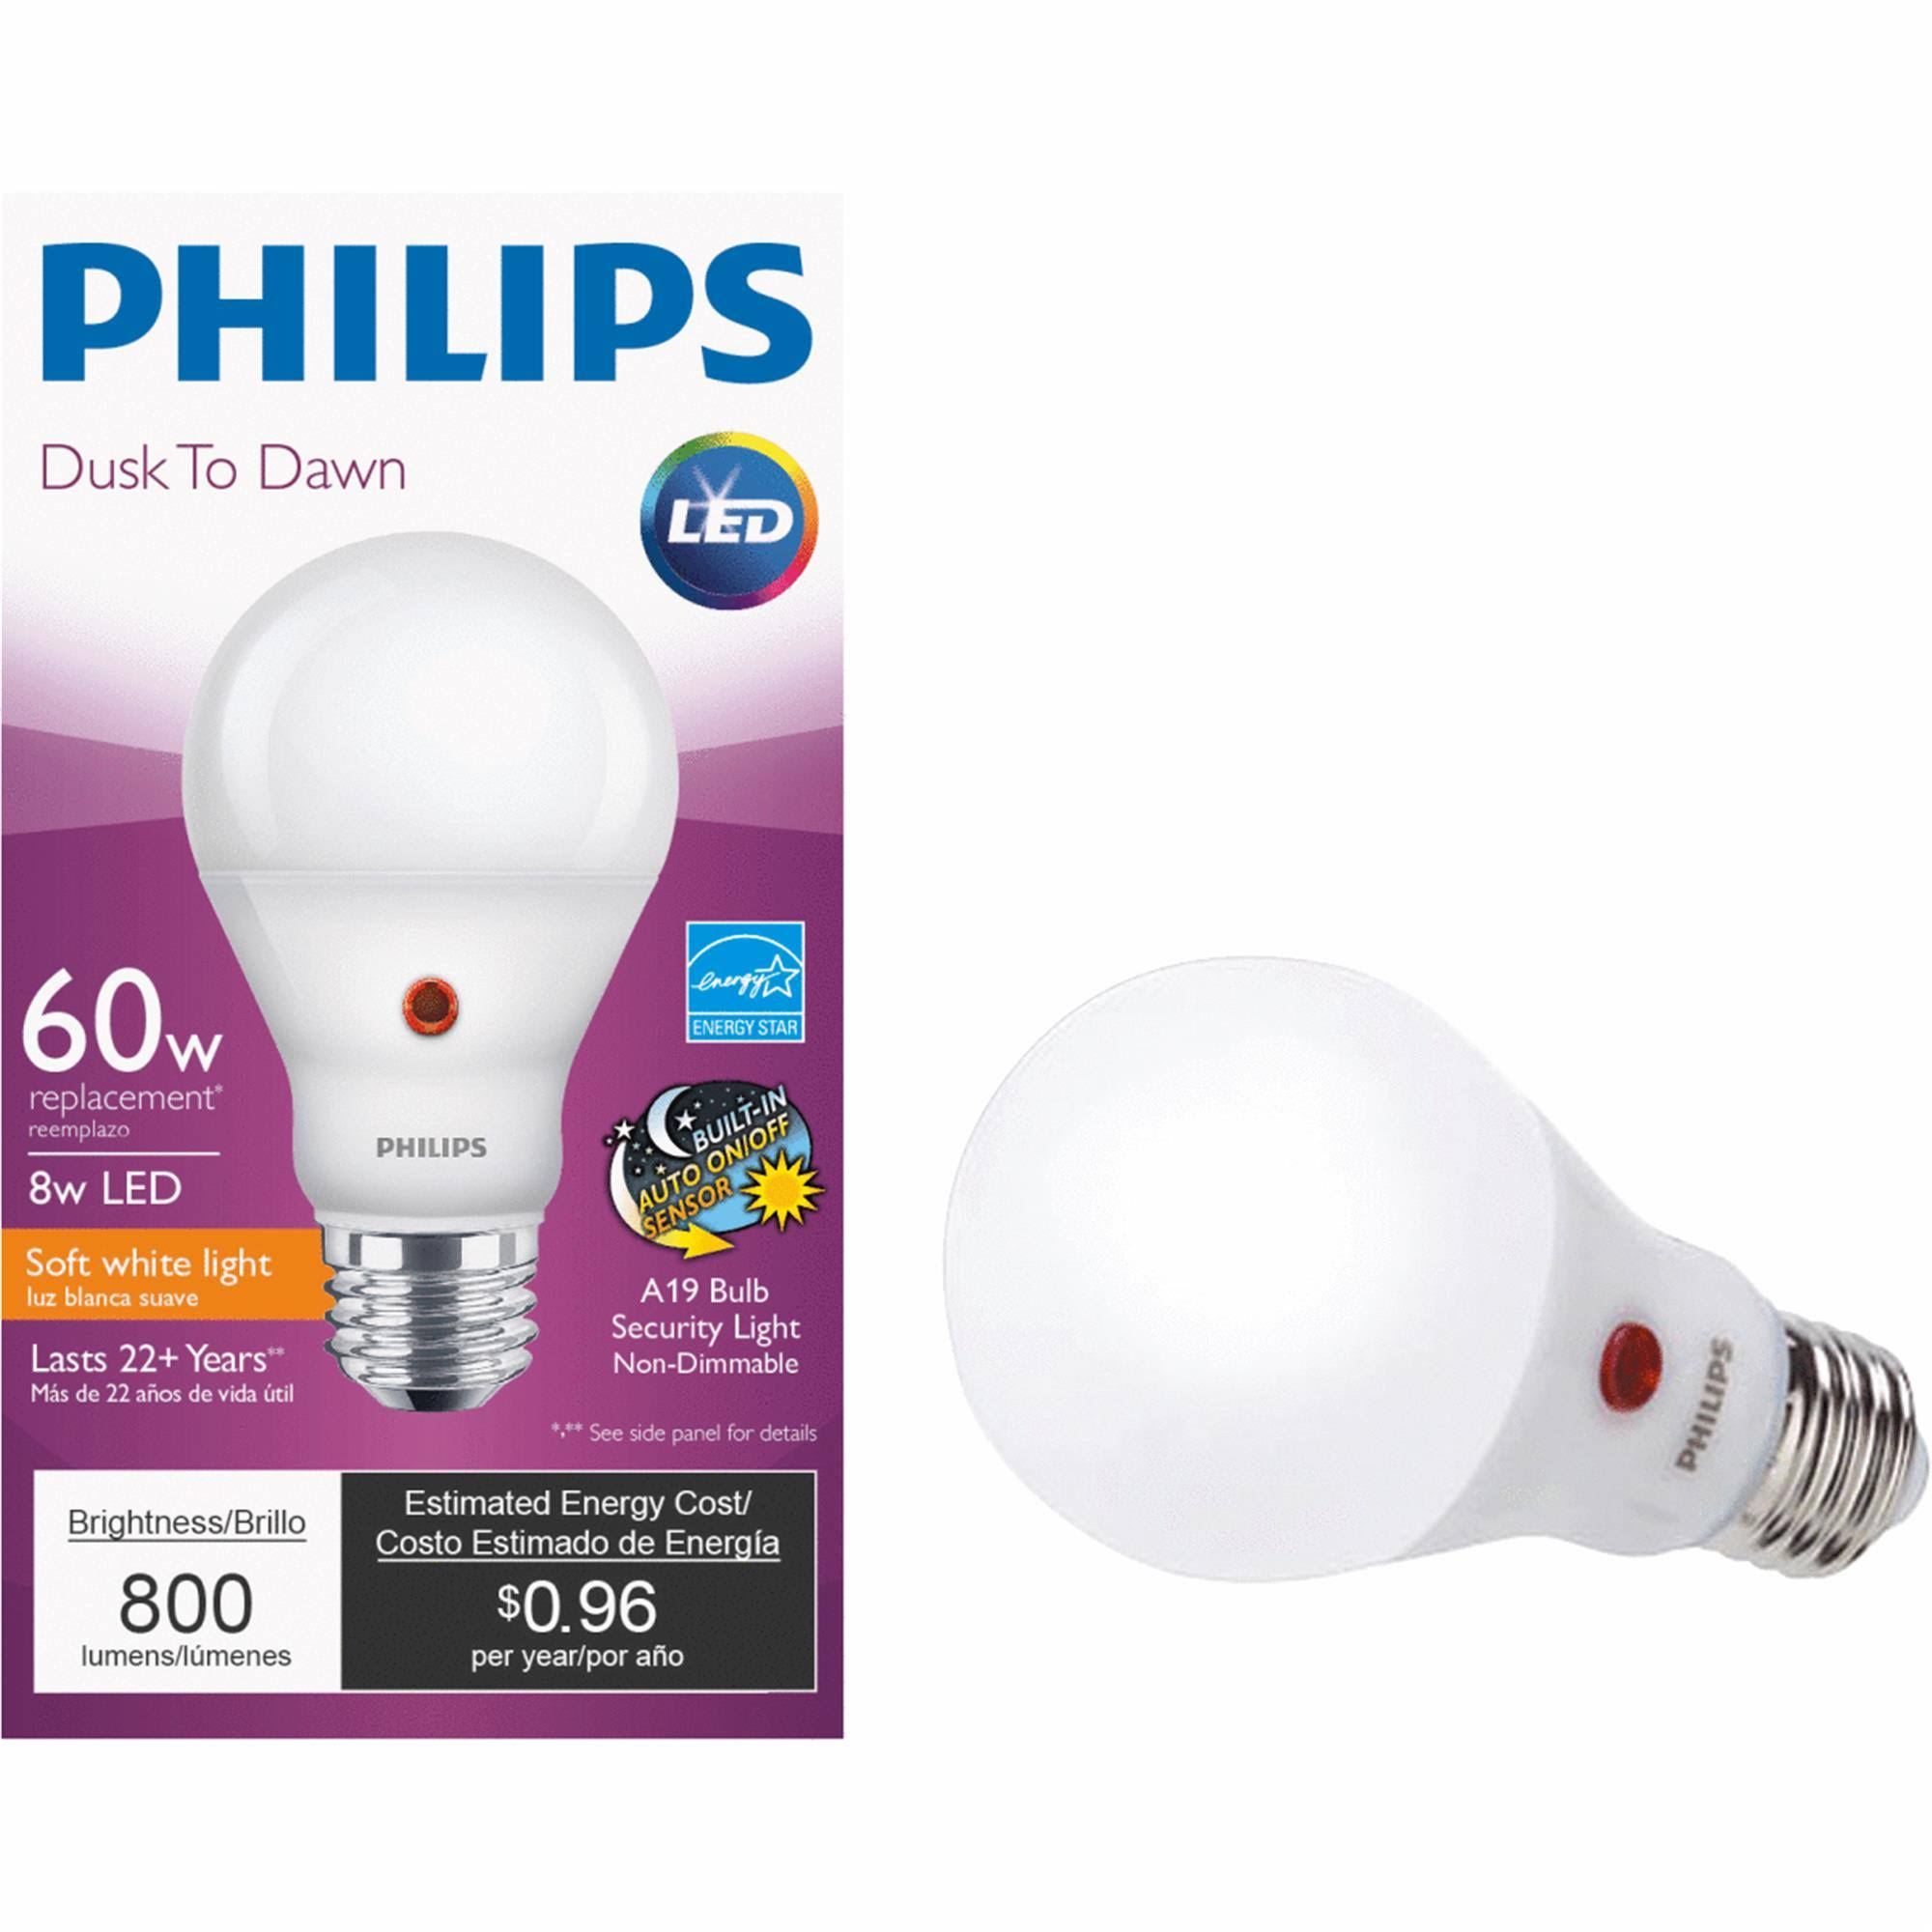 Philips A19 Medium Dusk To Dawn LED Light Bulb, Warm White